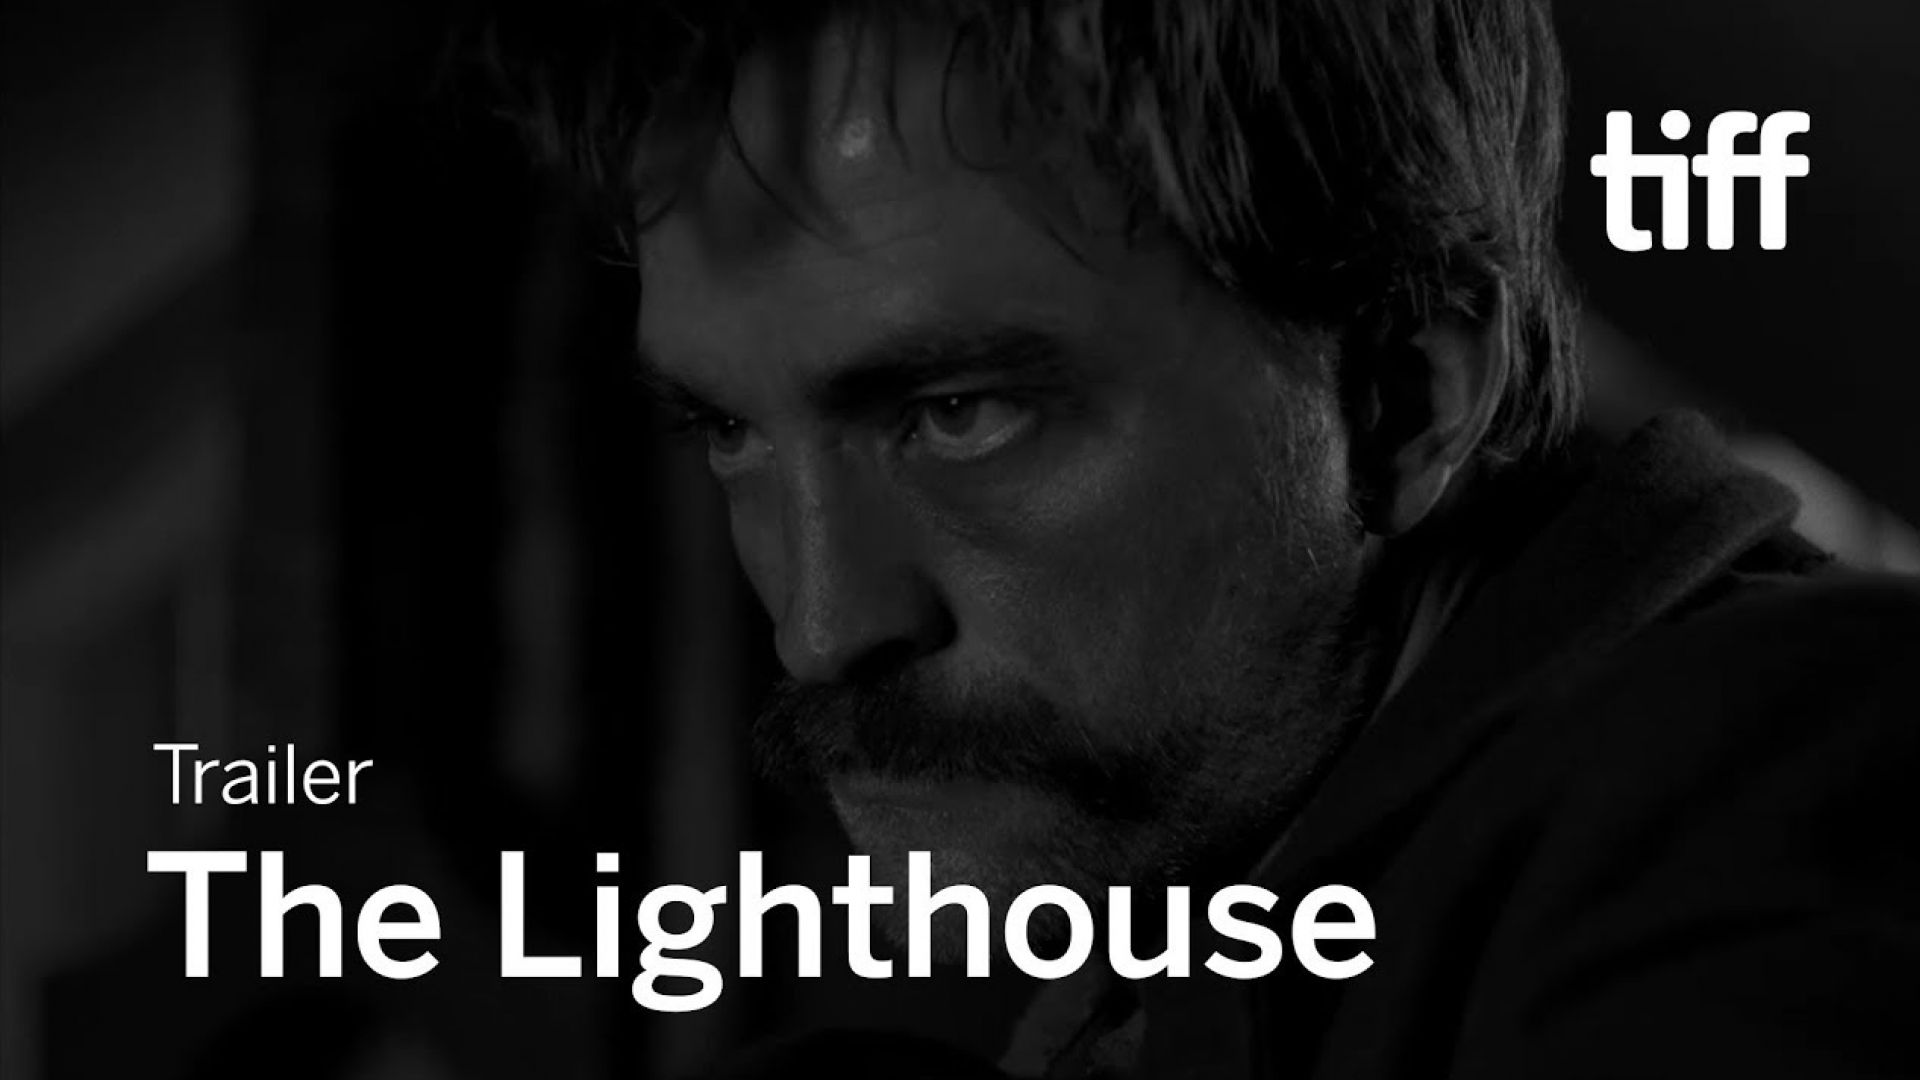 'The Lighthouse' trailer